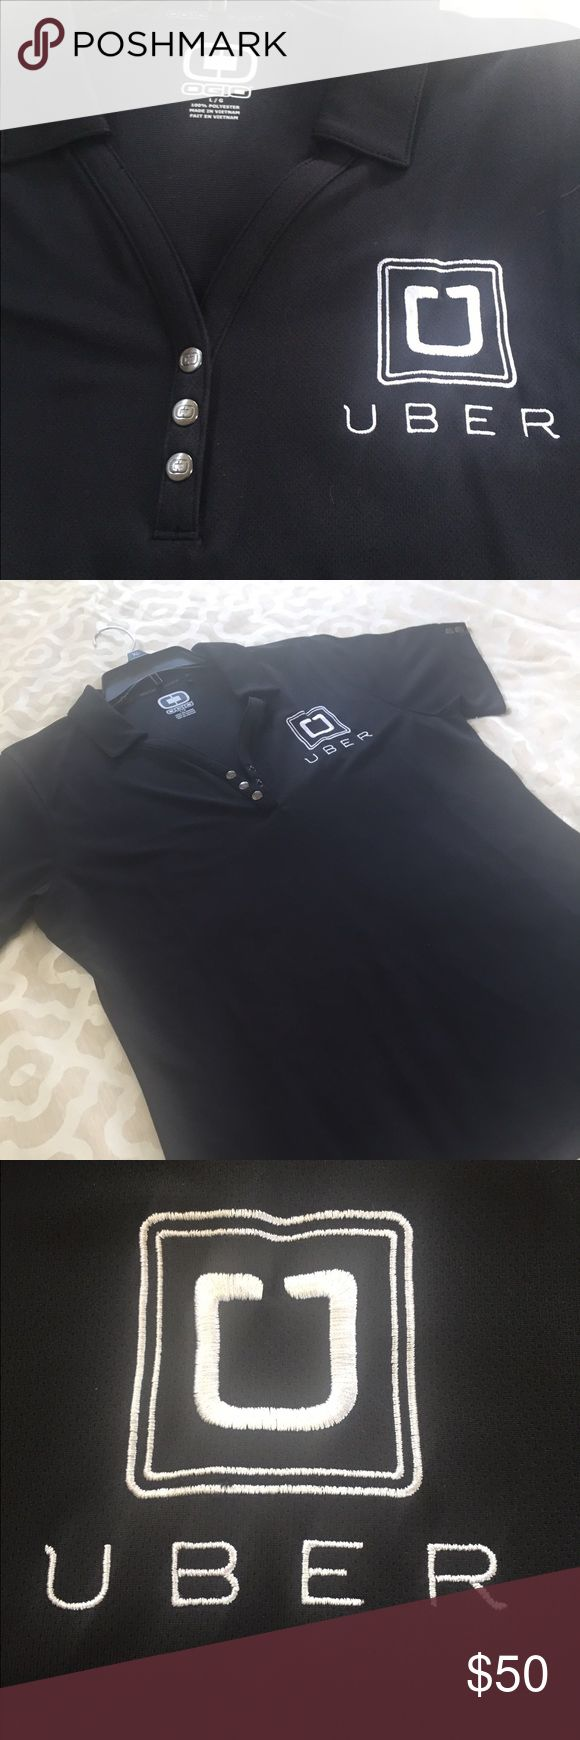 Custom Uber ladies polo shirt- Size large Super comfortable Ogio embroidered polo shirt. Moisture wicking material, not cotton. I had it custom made when I was driving for Uber. One of a kind. Supremes quality. My cost was $90!! Look professional while driving in this comfortable, trendy shirt. 👩🏻✈️🚖 OGIO Tops Button Down Shirts